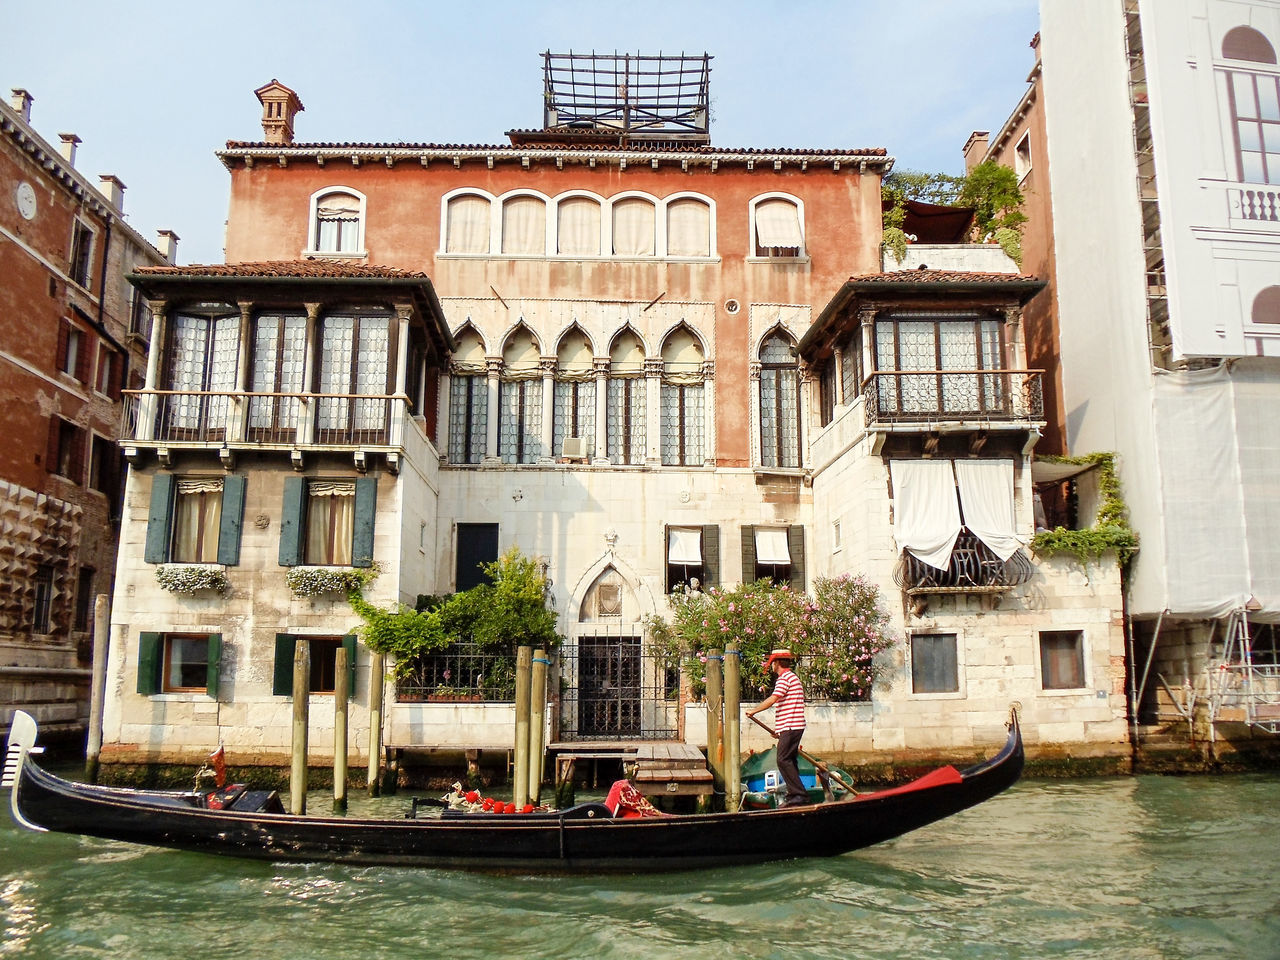 building exterior, architecture, nautical vessel, canal, built structure, boat, transportation, day, real people, mode of transport, gondola, water, outdoors, men, waterfront, oar, gondolier, gondola - traditional boat, sitting, tree, sailing, rowing, nature, city, sky, people